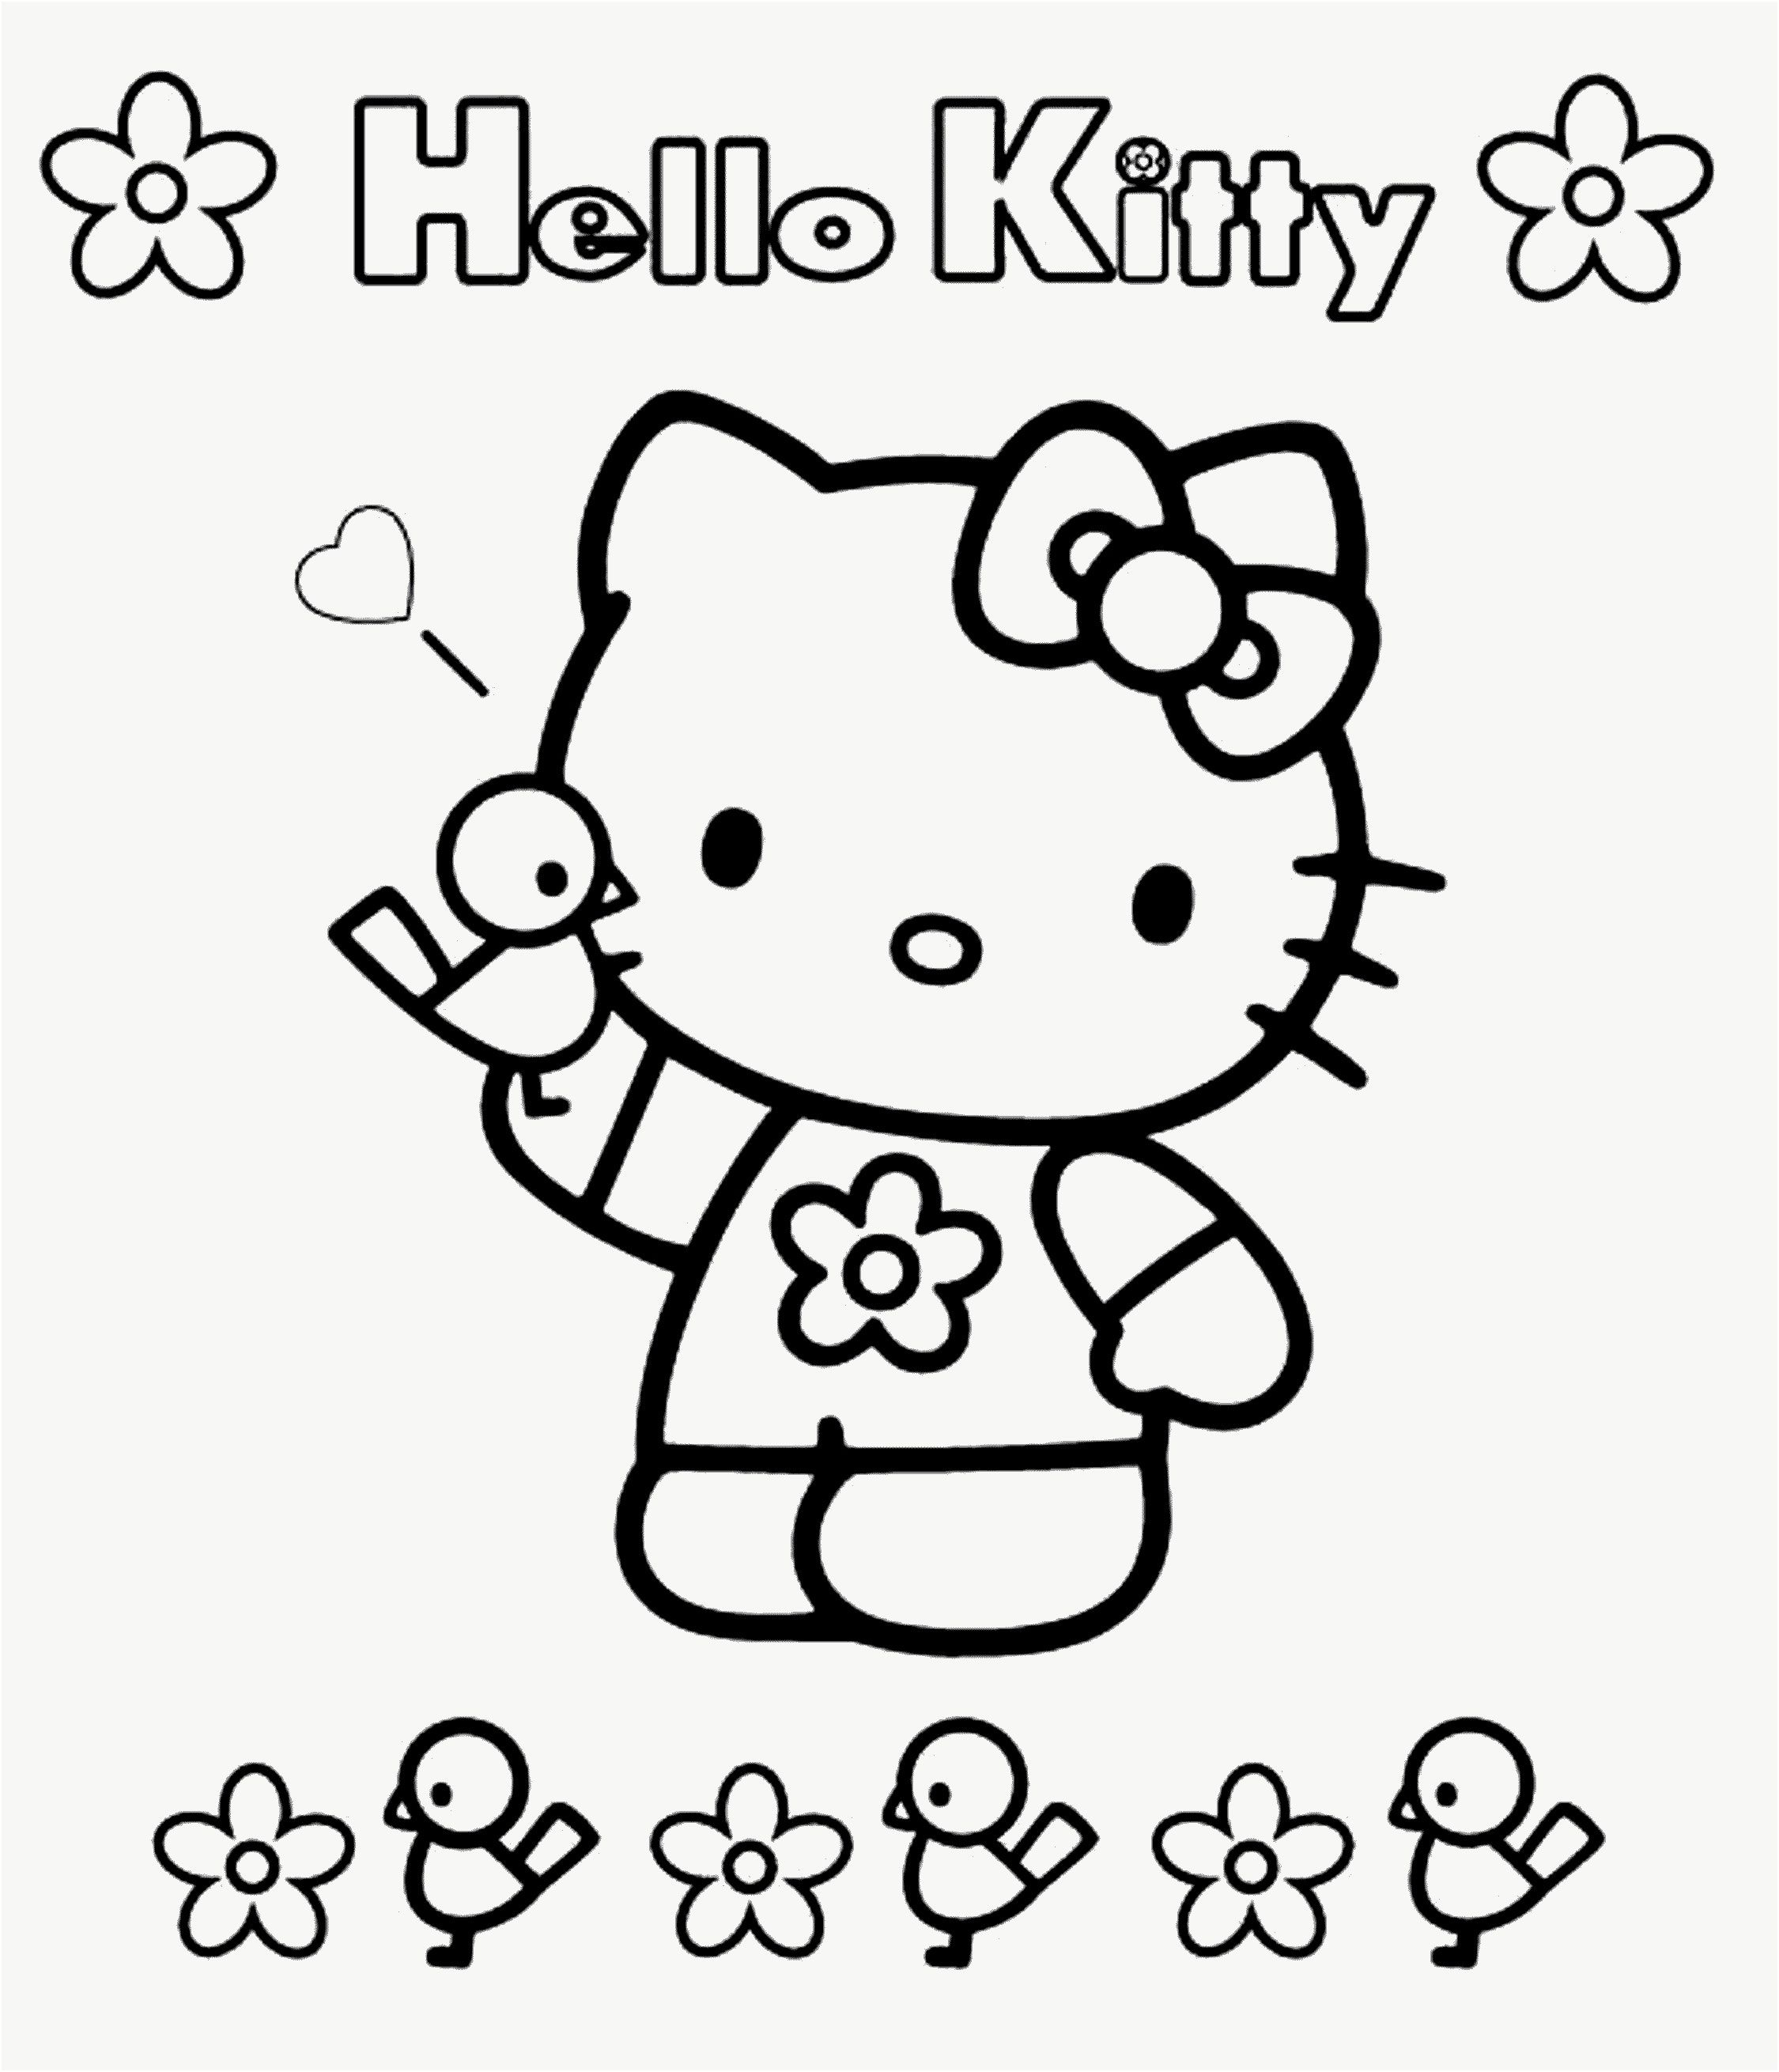 8 Genial Coloriage Enfant 2 Ans Image Hello Kitty Coloring Kitty Coloring Cat Coloring Book